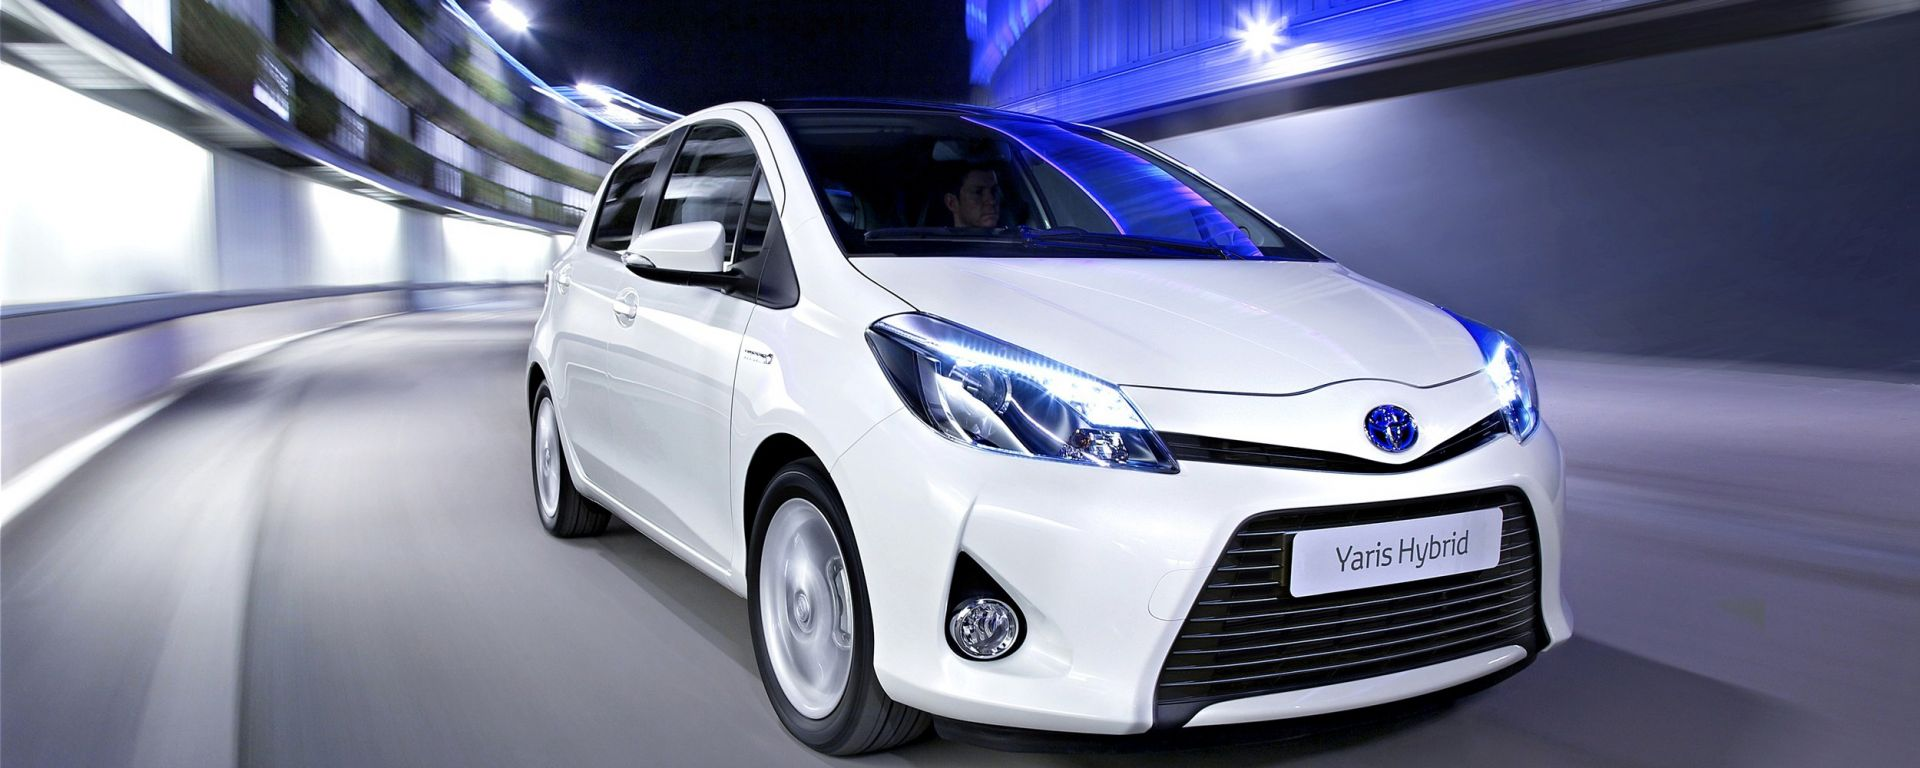 prova toyota yaris hybrid ora anche in video motorbox. Black Bedroom Furniture Sets. Home Design Ideas